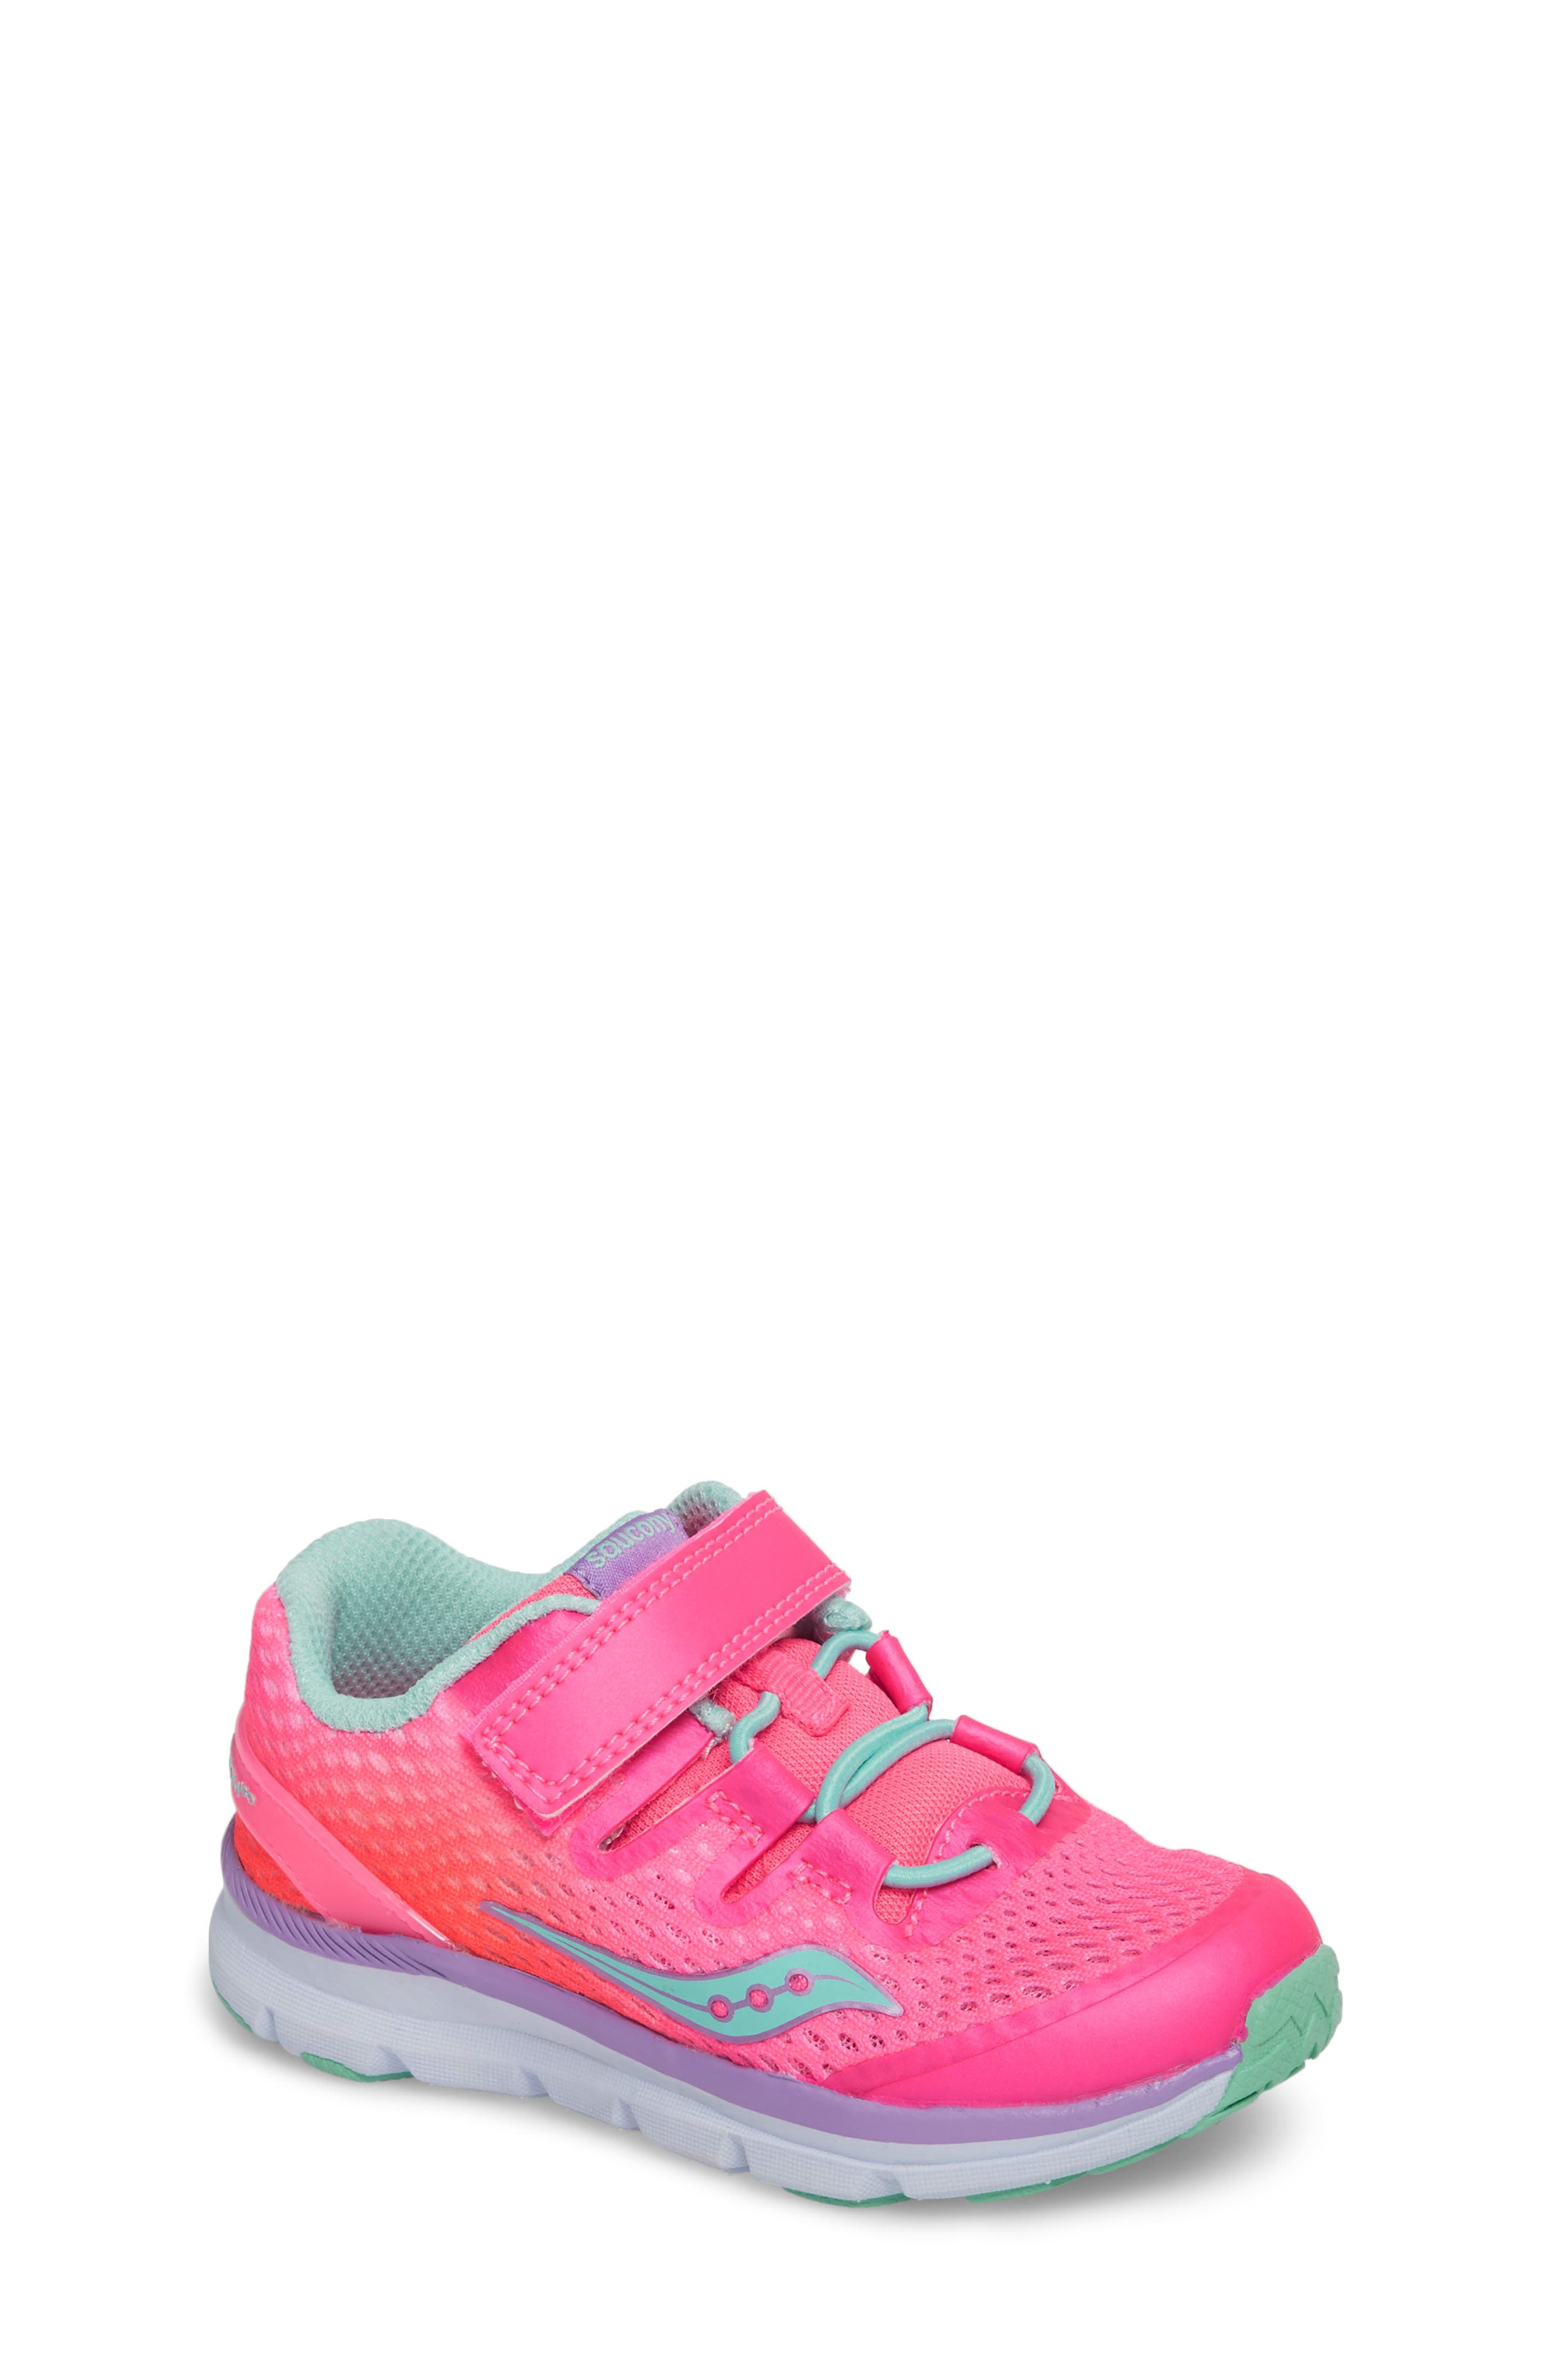 Main Image - Saucony Baby Freedom ISO Sneaker (Baby, Walker & Toddler)